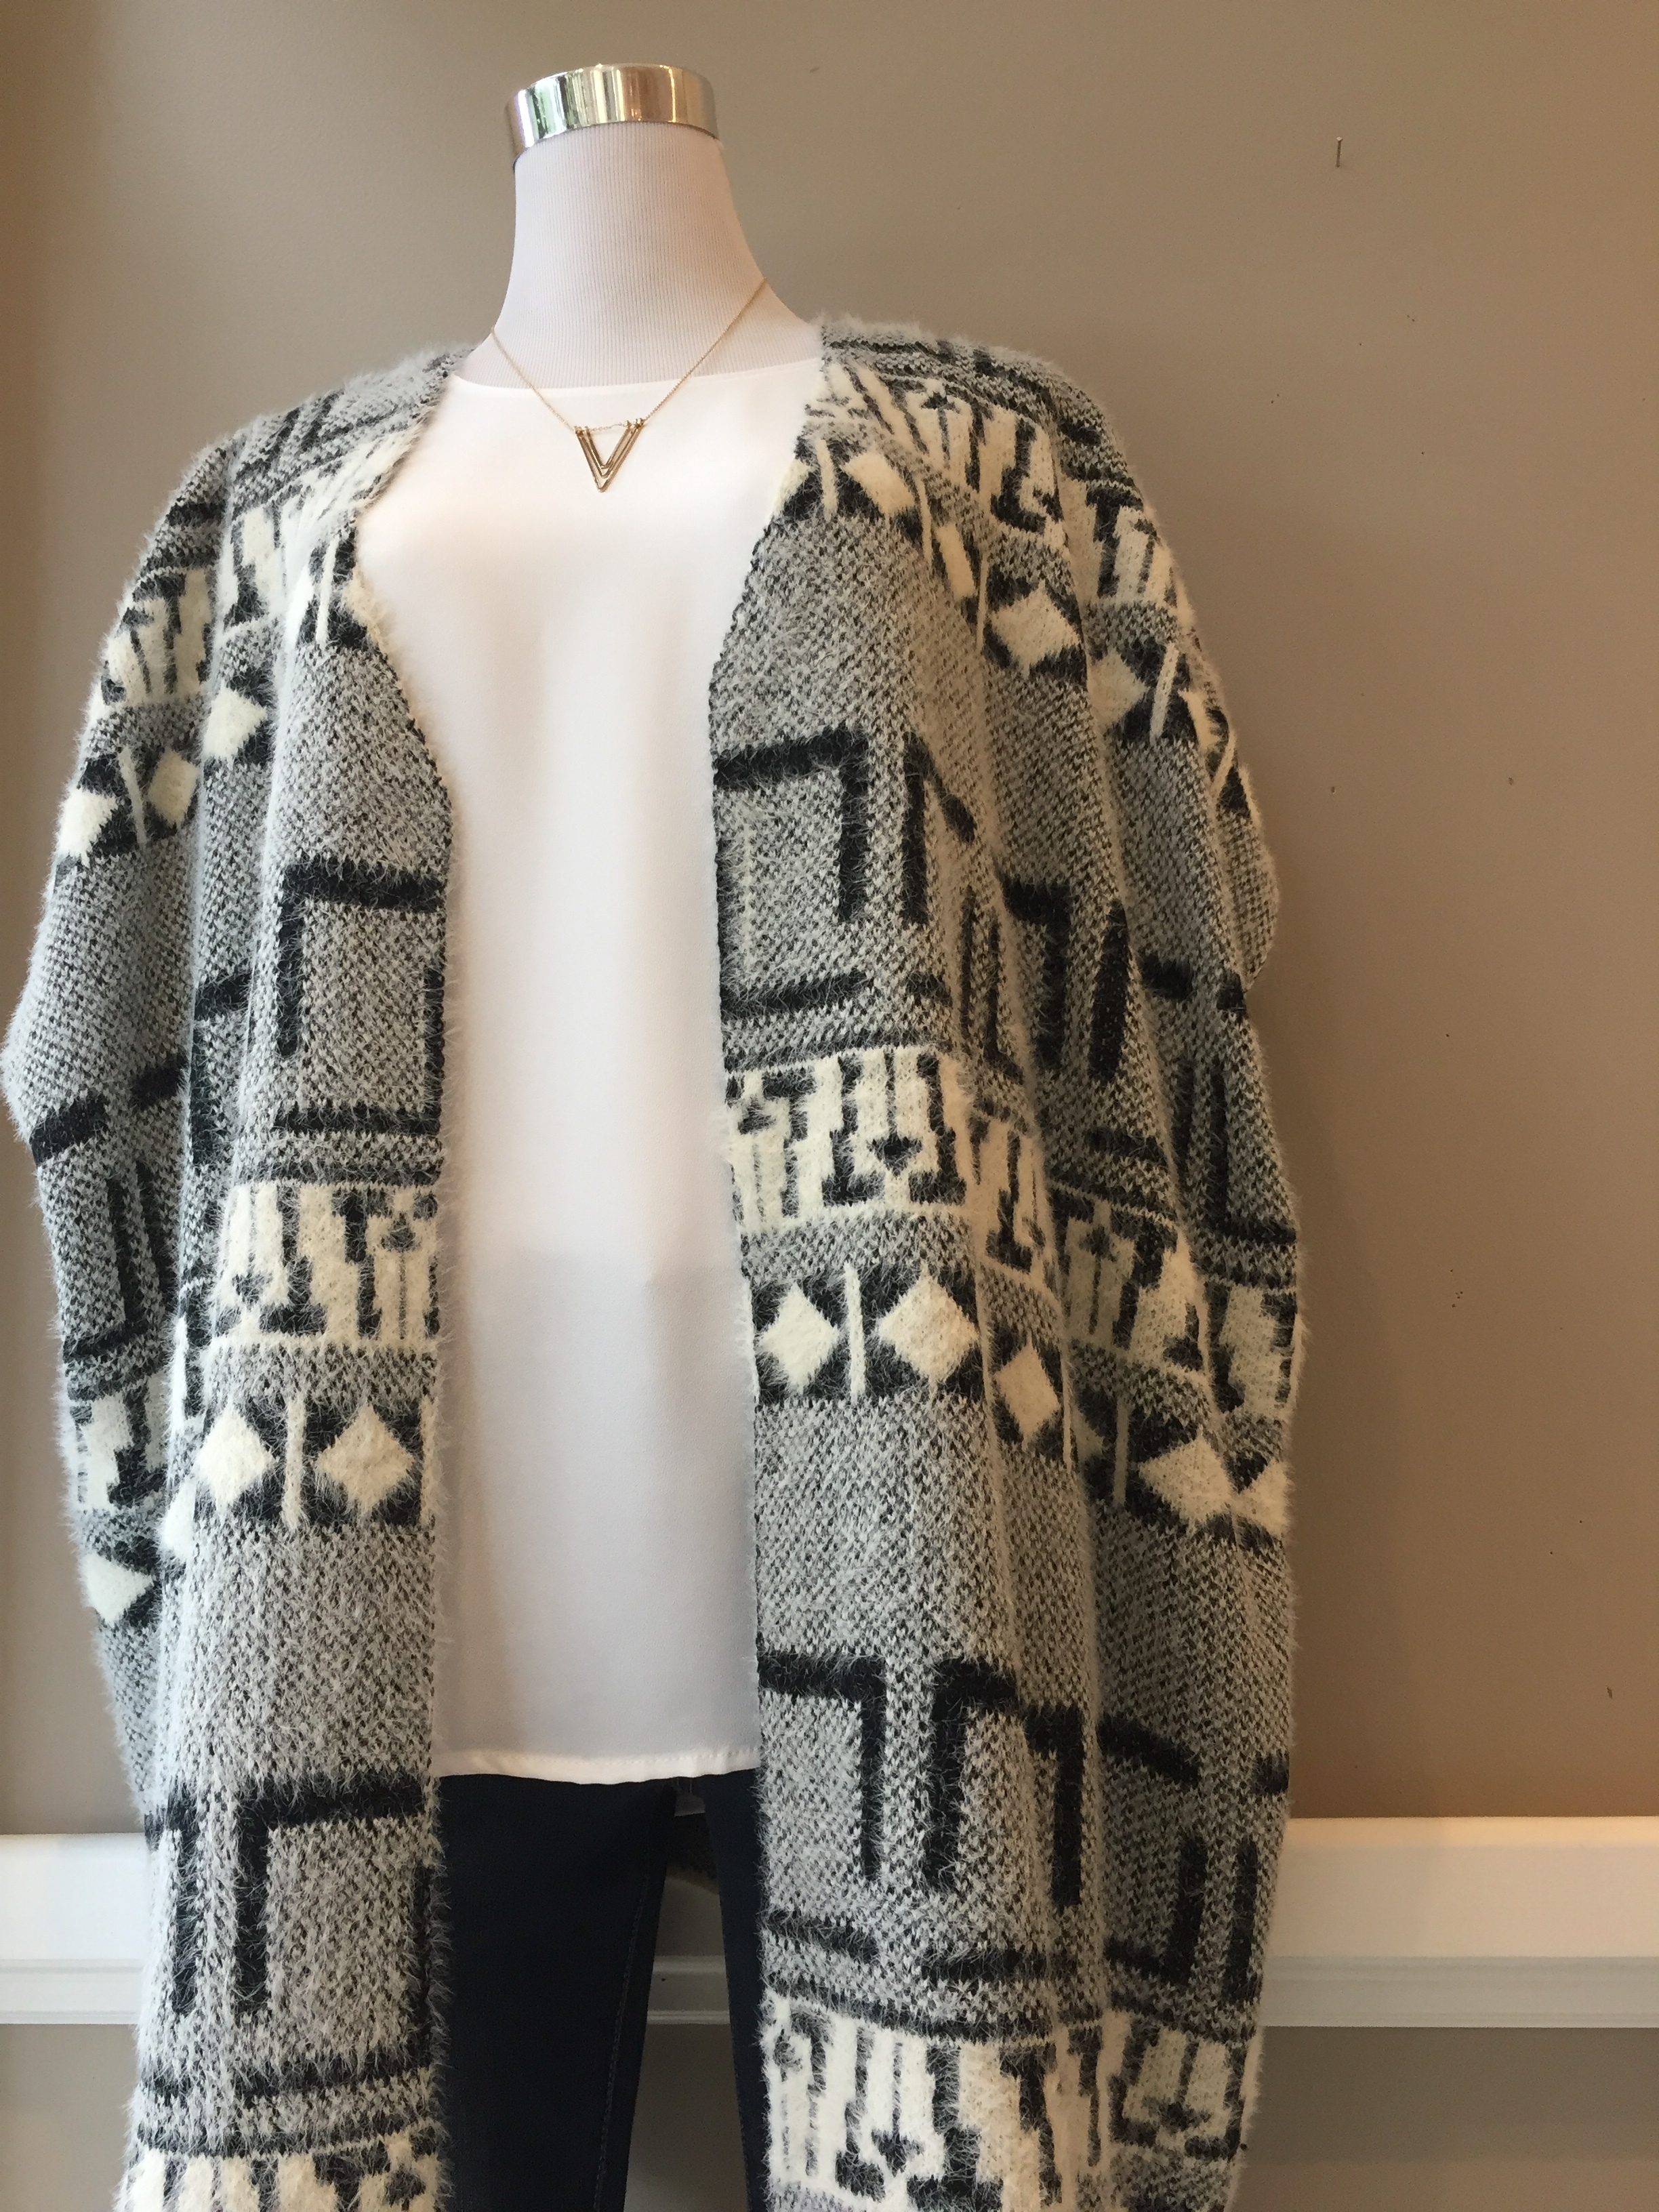 Patterned cozy vest ($38, also in navy)